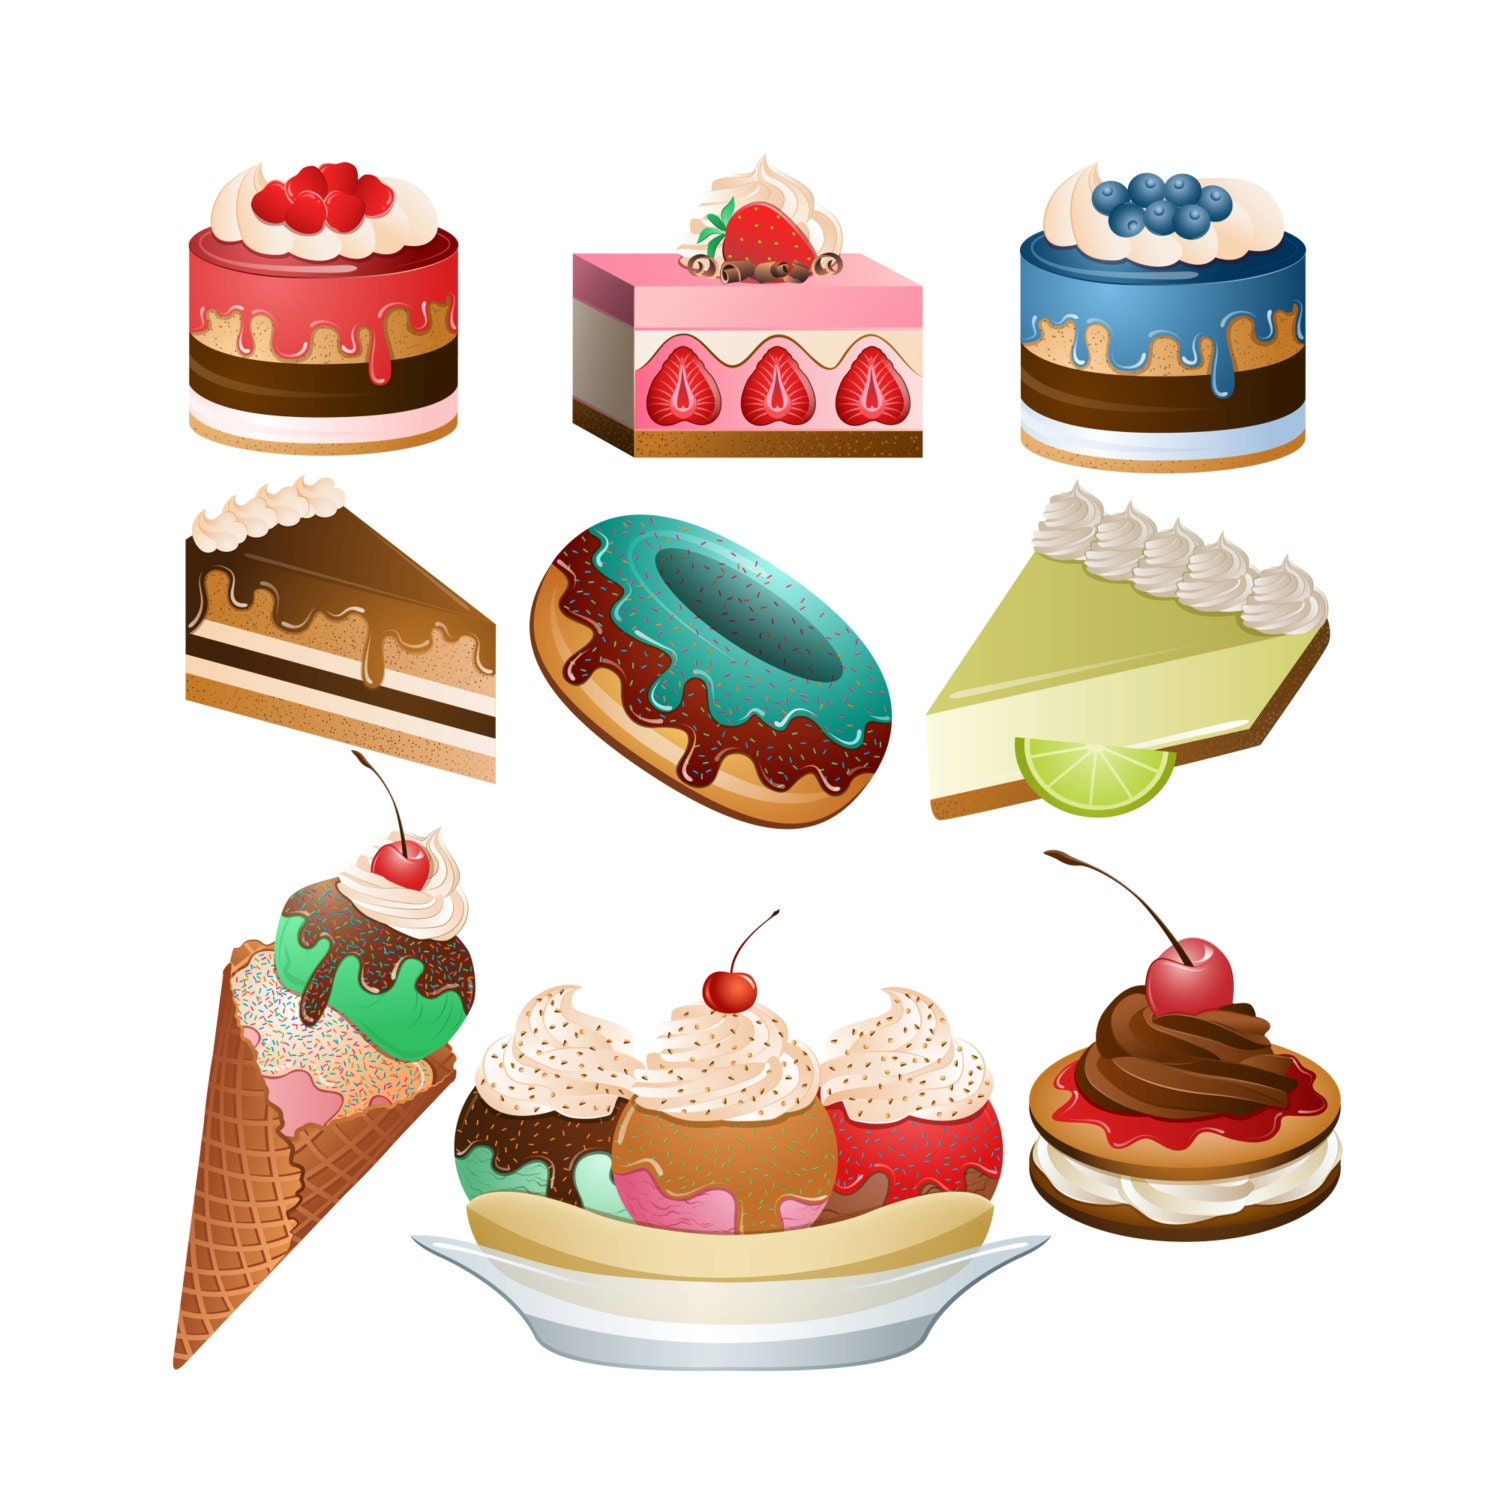 Desserts ClipArt Set of 9 PNG JPG and Vector Desserts